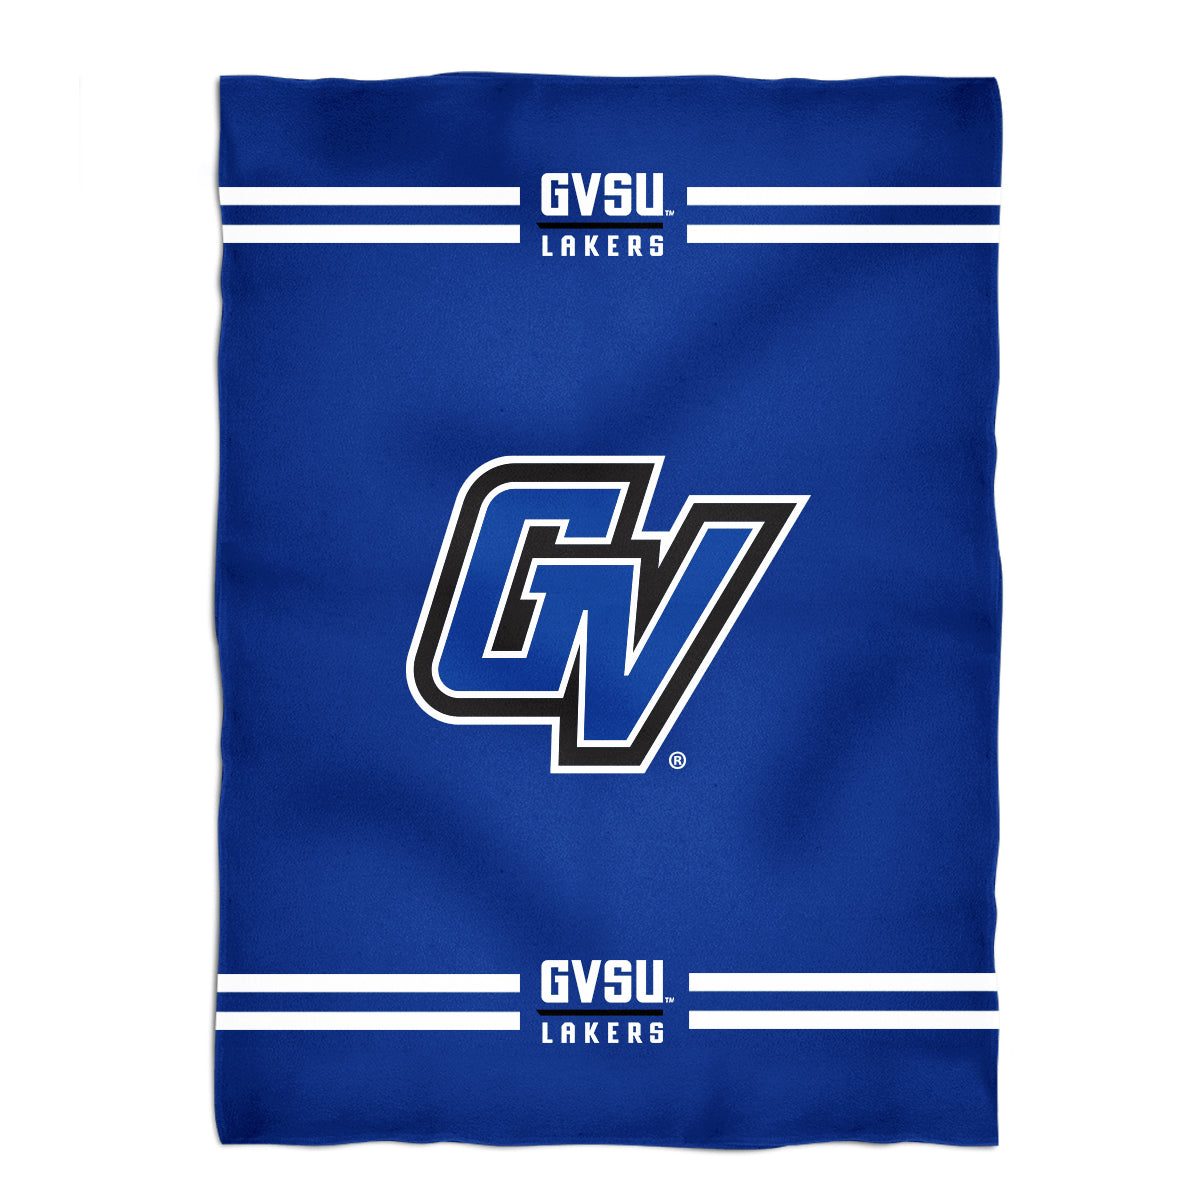 Grand Valley State Lakers Vive La Fete Game Day Soft Premium Fleece Blue Throw Blanket 40